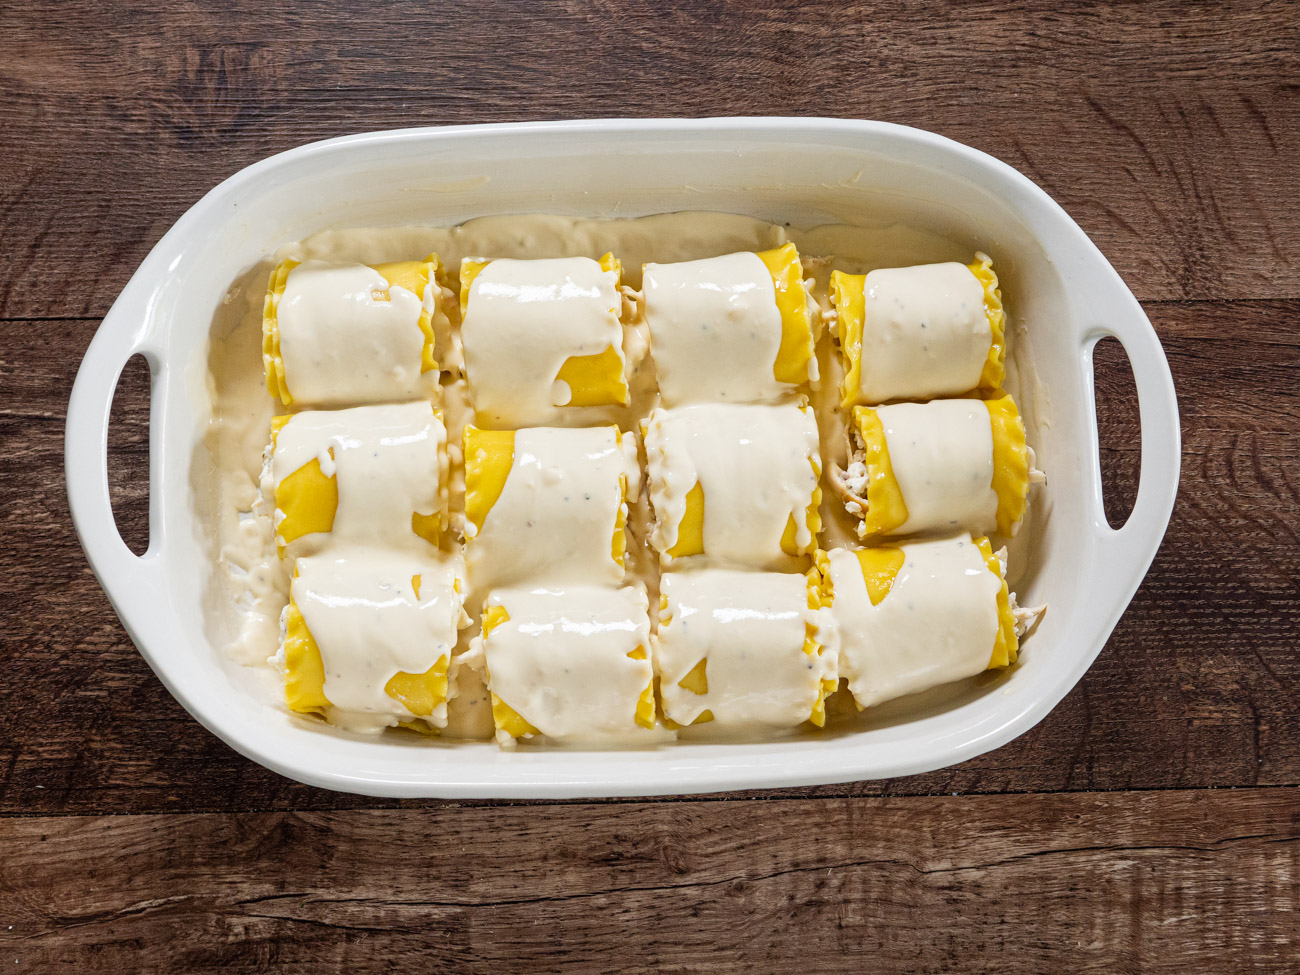 Place each lasagna roll up into the prepared casserole dish. Pour the remaining alfredo sauce over the lasagna roll-ups. Top with shredded mozzarella and parmesan cheese.